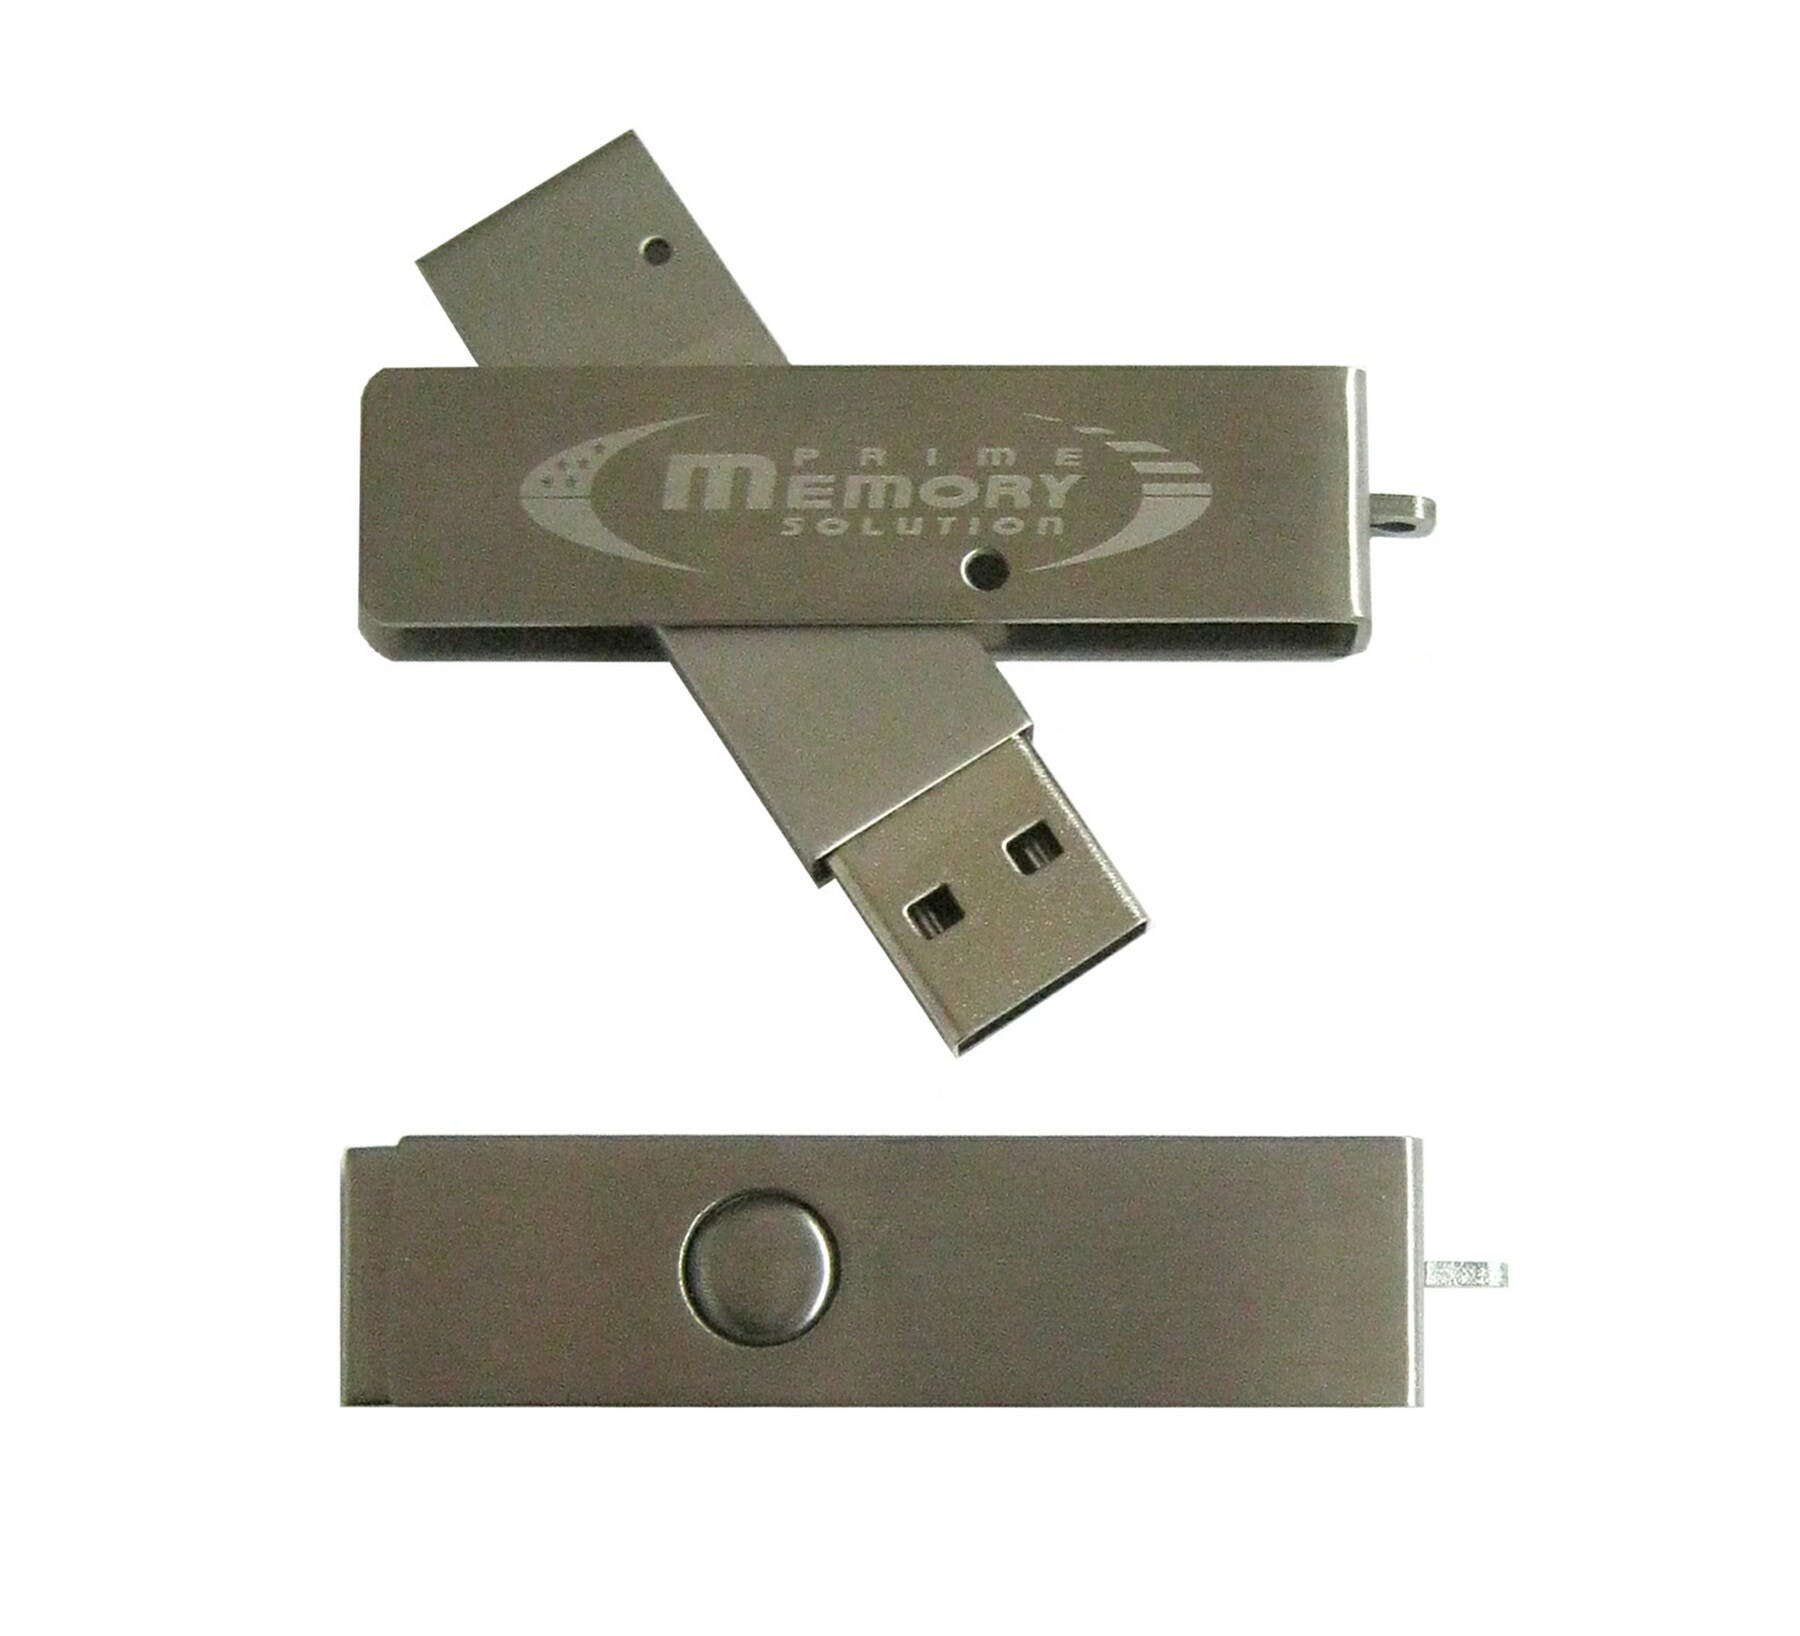 High Roller USB Flash Drive (Item # PDMIQ-HUYLX) Promotional flash drive sold by InkEasy